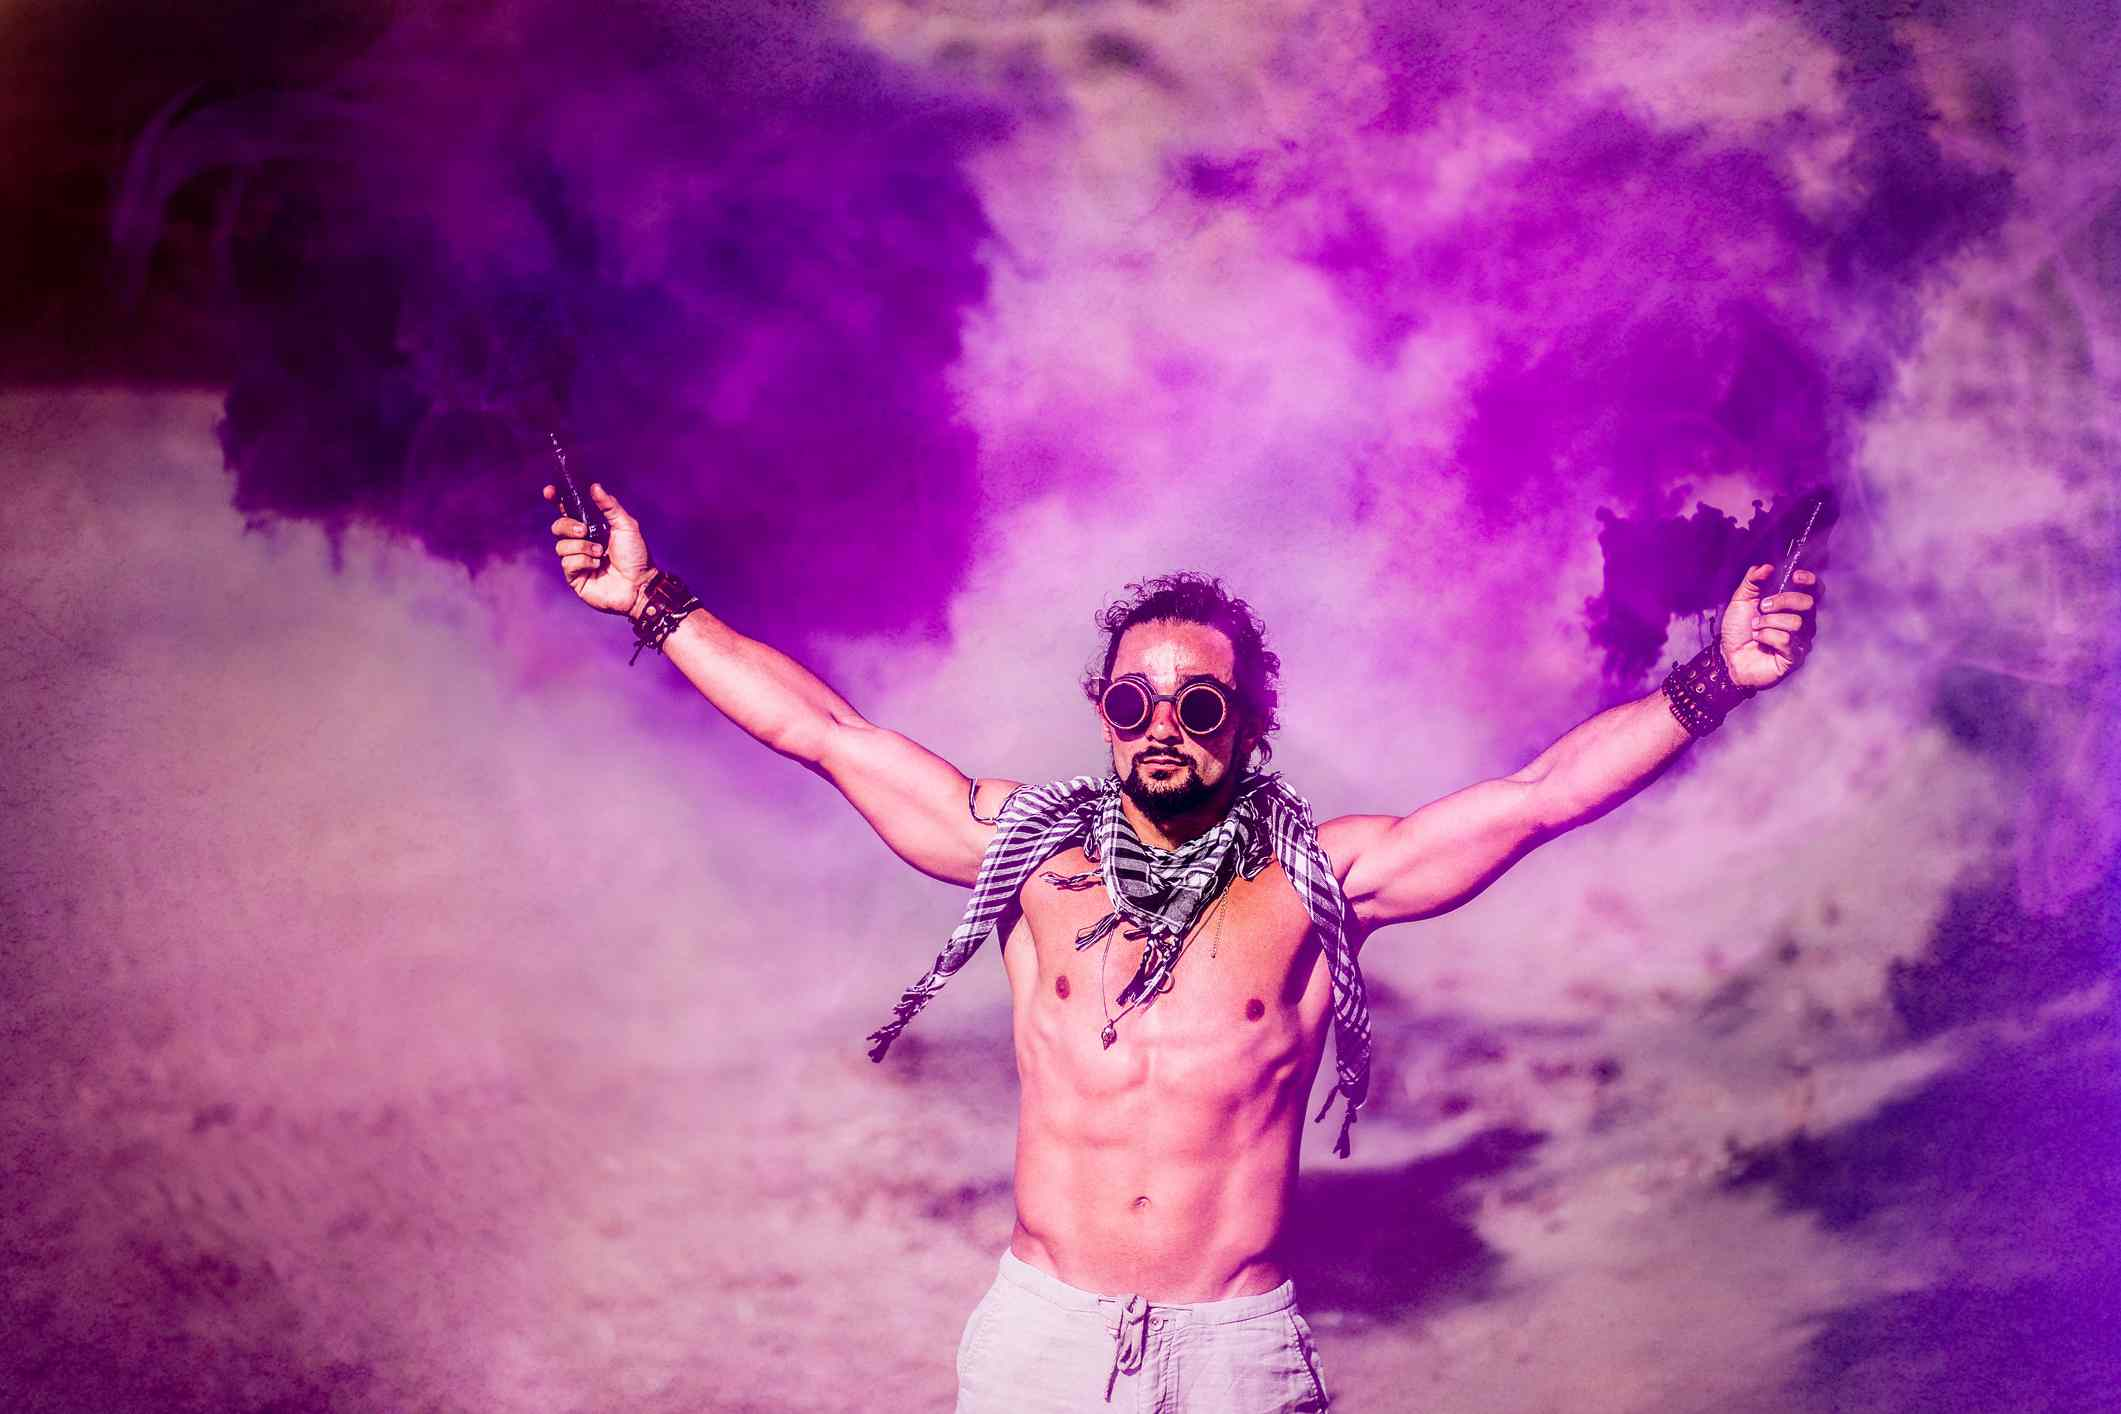 Young man standing with smoke bombs in desert